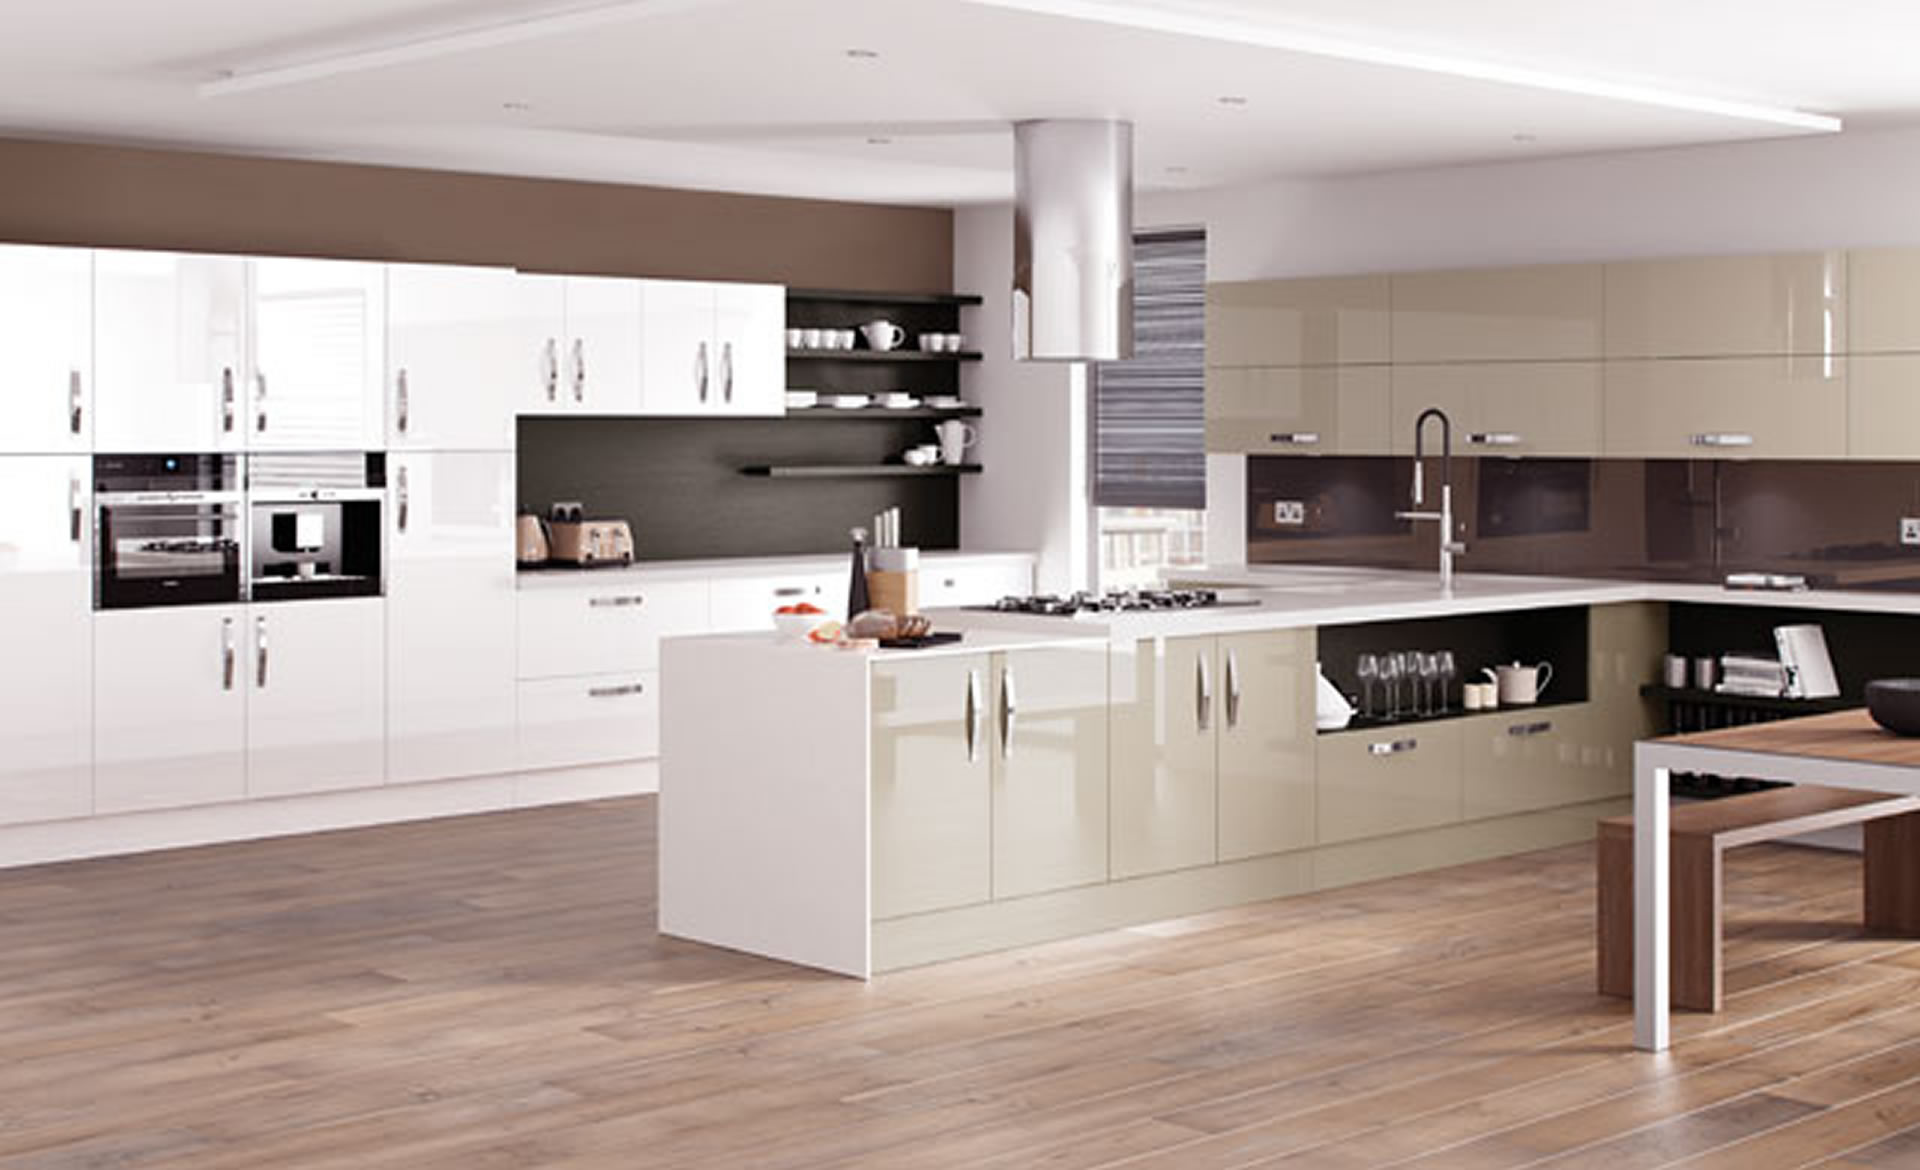 Kitchen designs astro gloss dakar and white for Photos of new kitchen designs